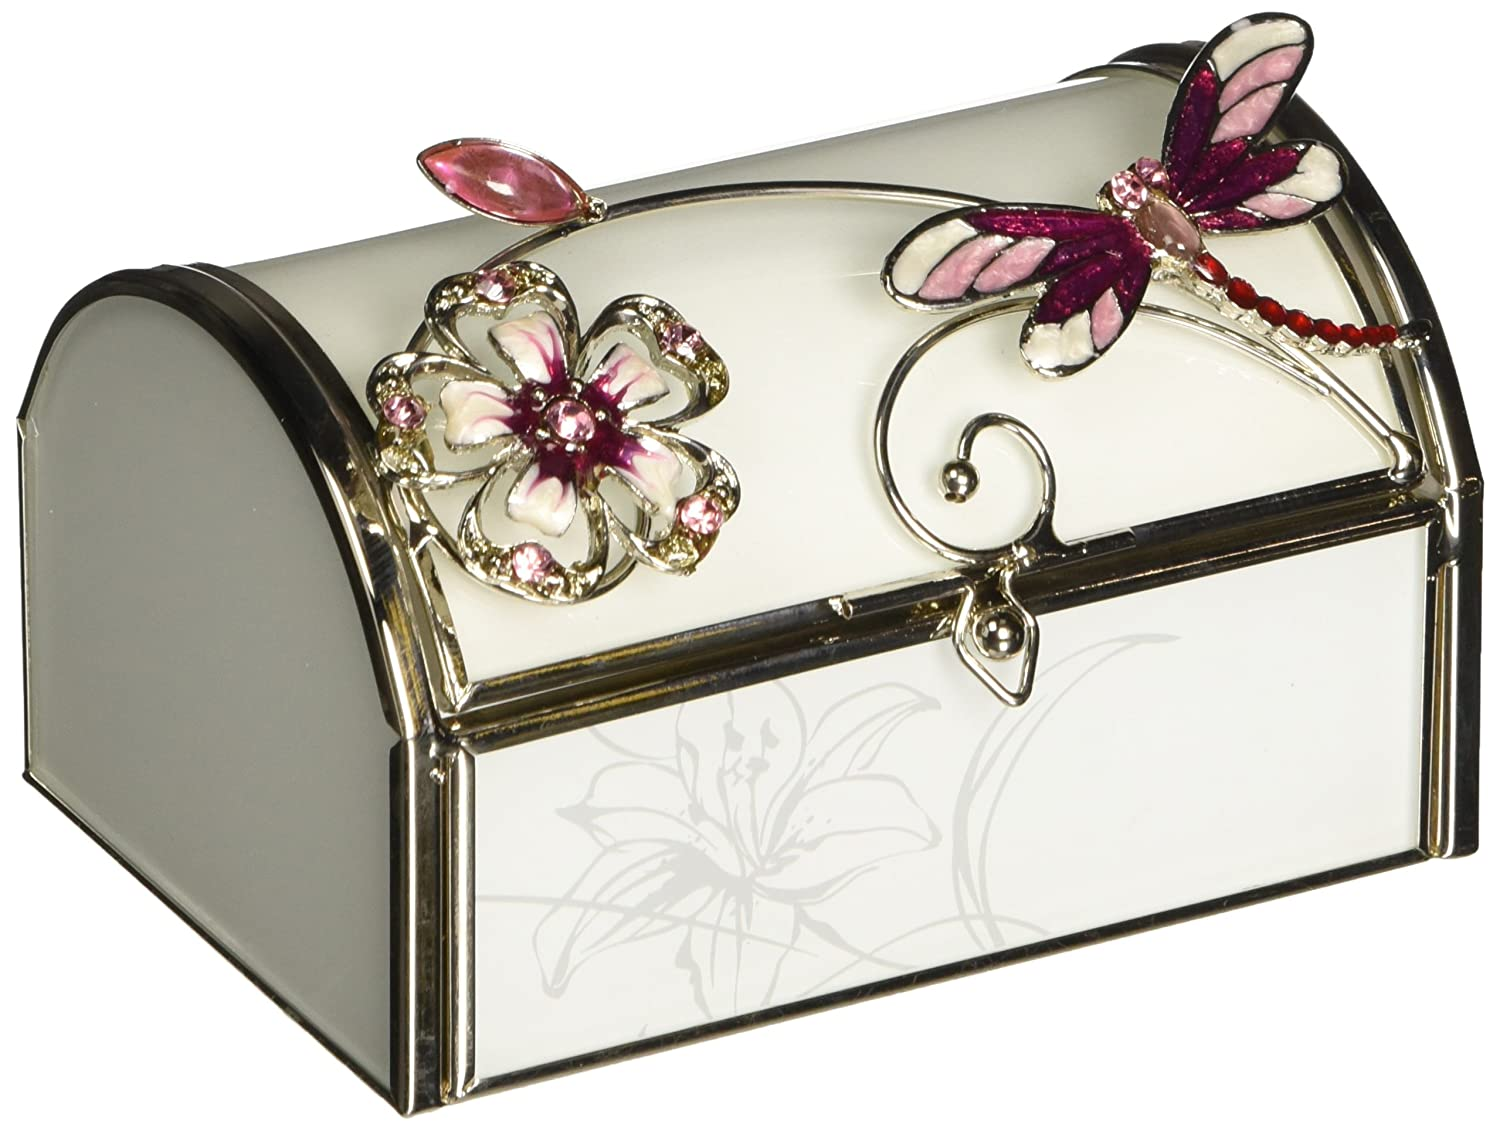 StealStreet SS-A-38140 Jewelry Box Chest with Flaming Red Dragonfly and Jeweled White Flower